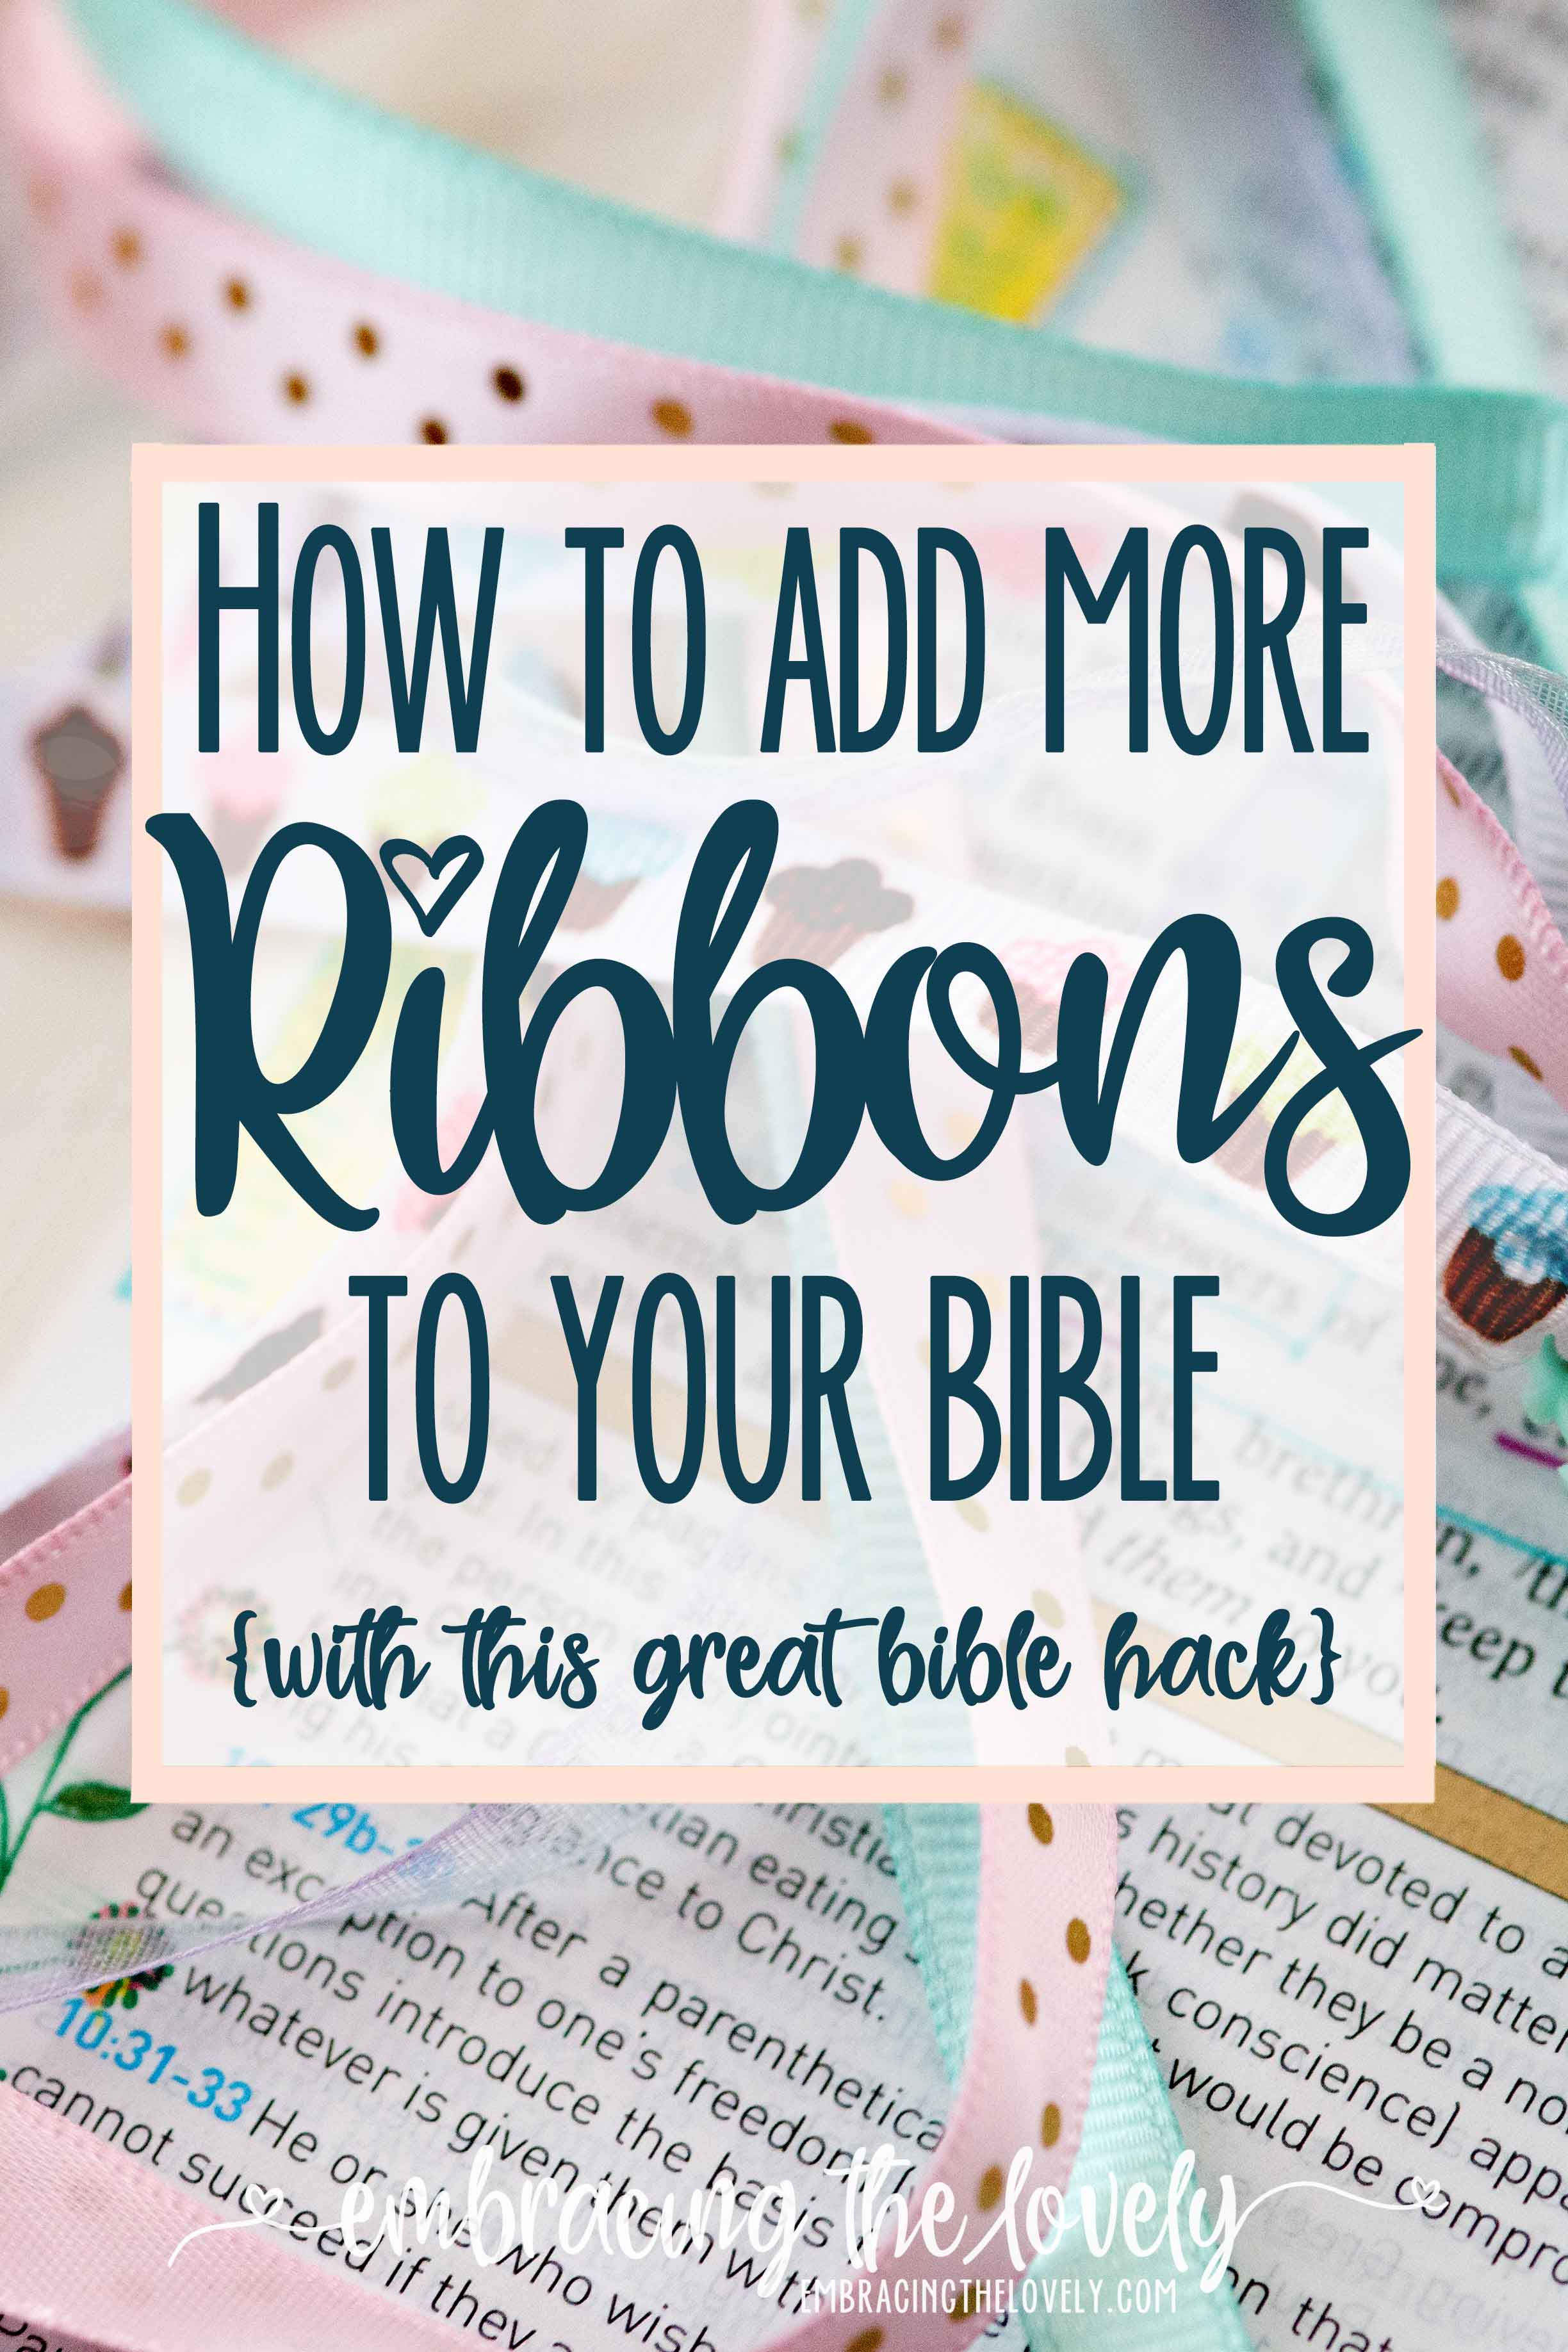 Enhance your Personal Bible Study and Bible Reading by Adding More Ribbons to Your Bible With This Bible Ribbon Bookmark Tutorial from Hey Creative Sister